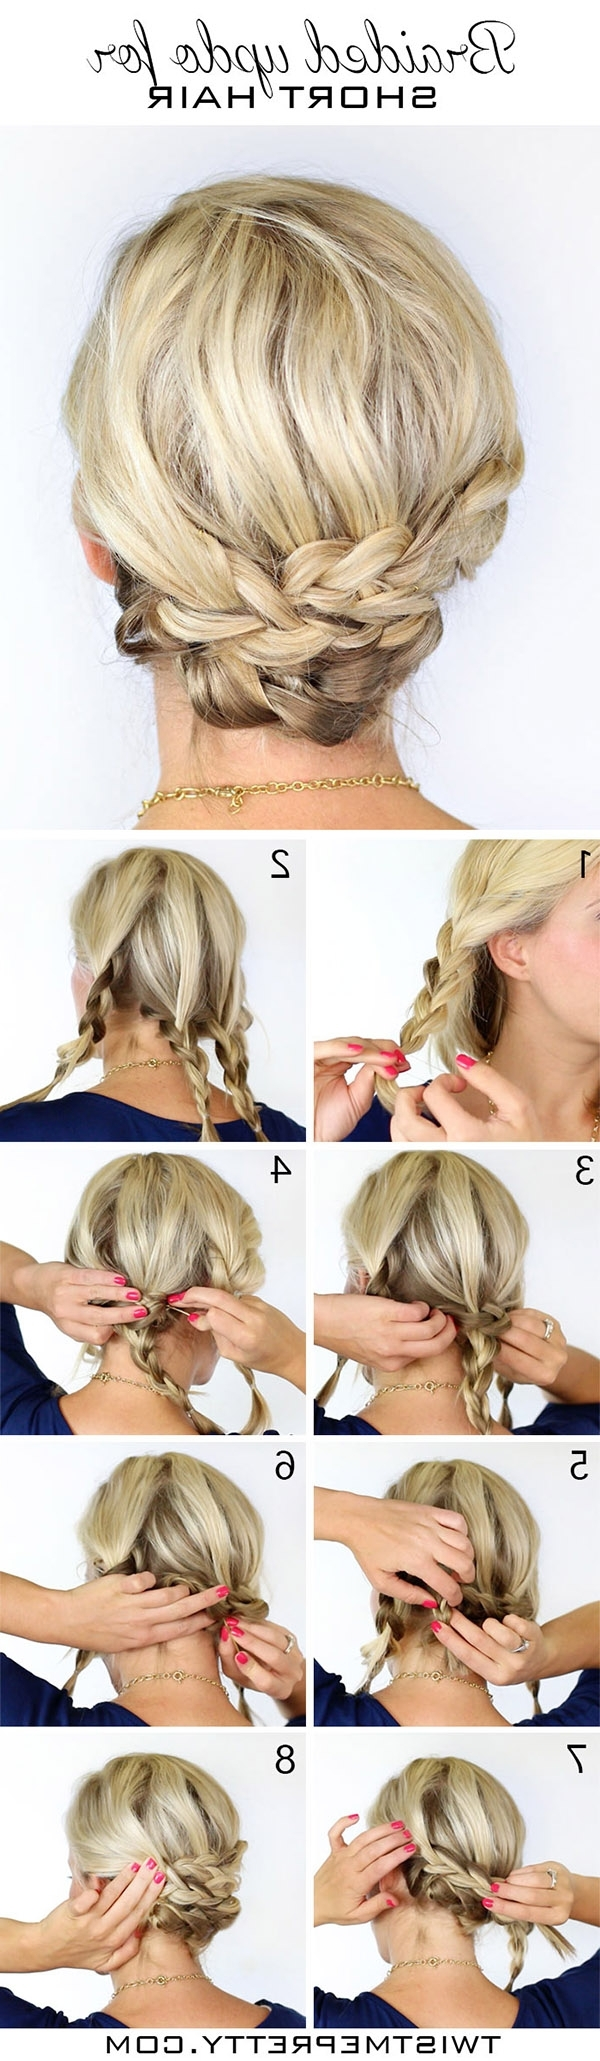 20 Diy Wedding Hairstyles With Tutorials To Try On Your Own Pertaining To Favorite Diy Simple Wedding Hairstyles For Long Hair (View 2 of 15)